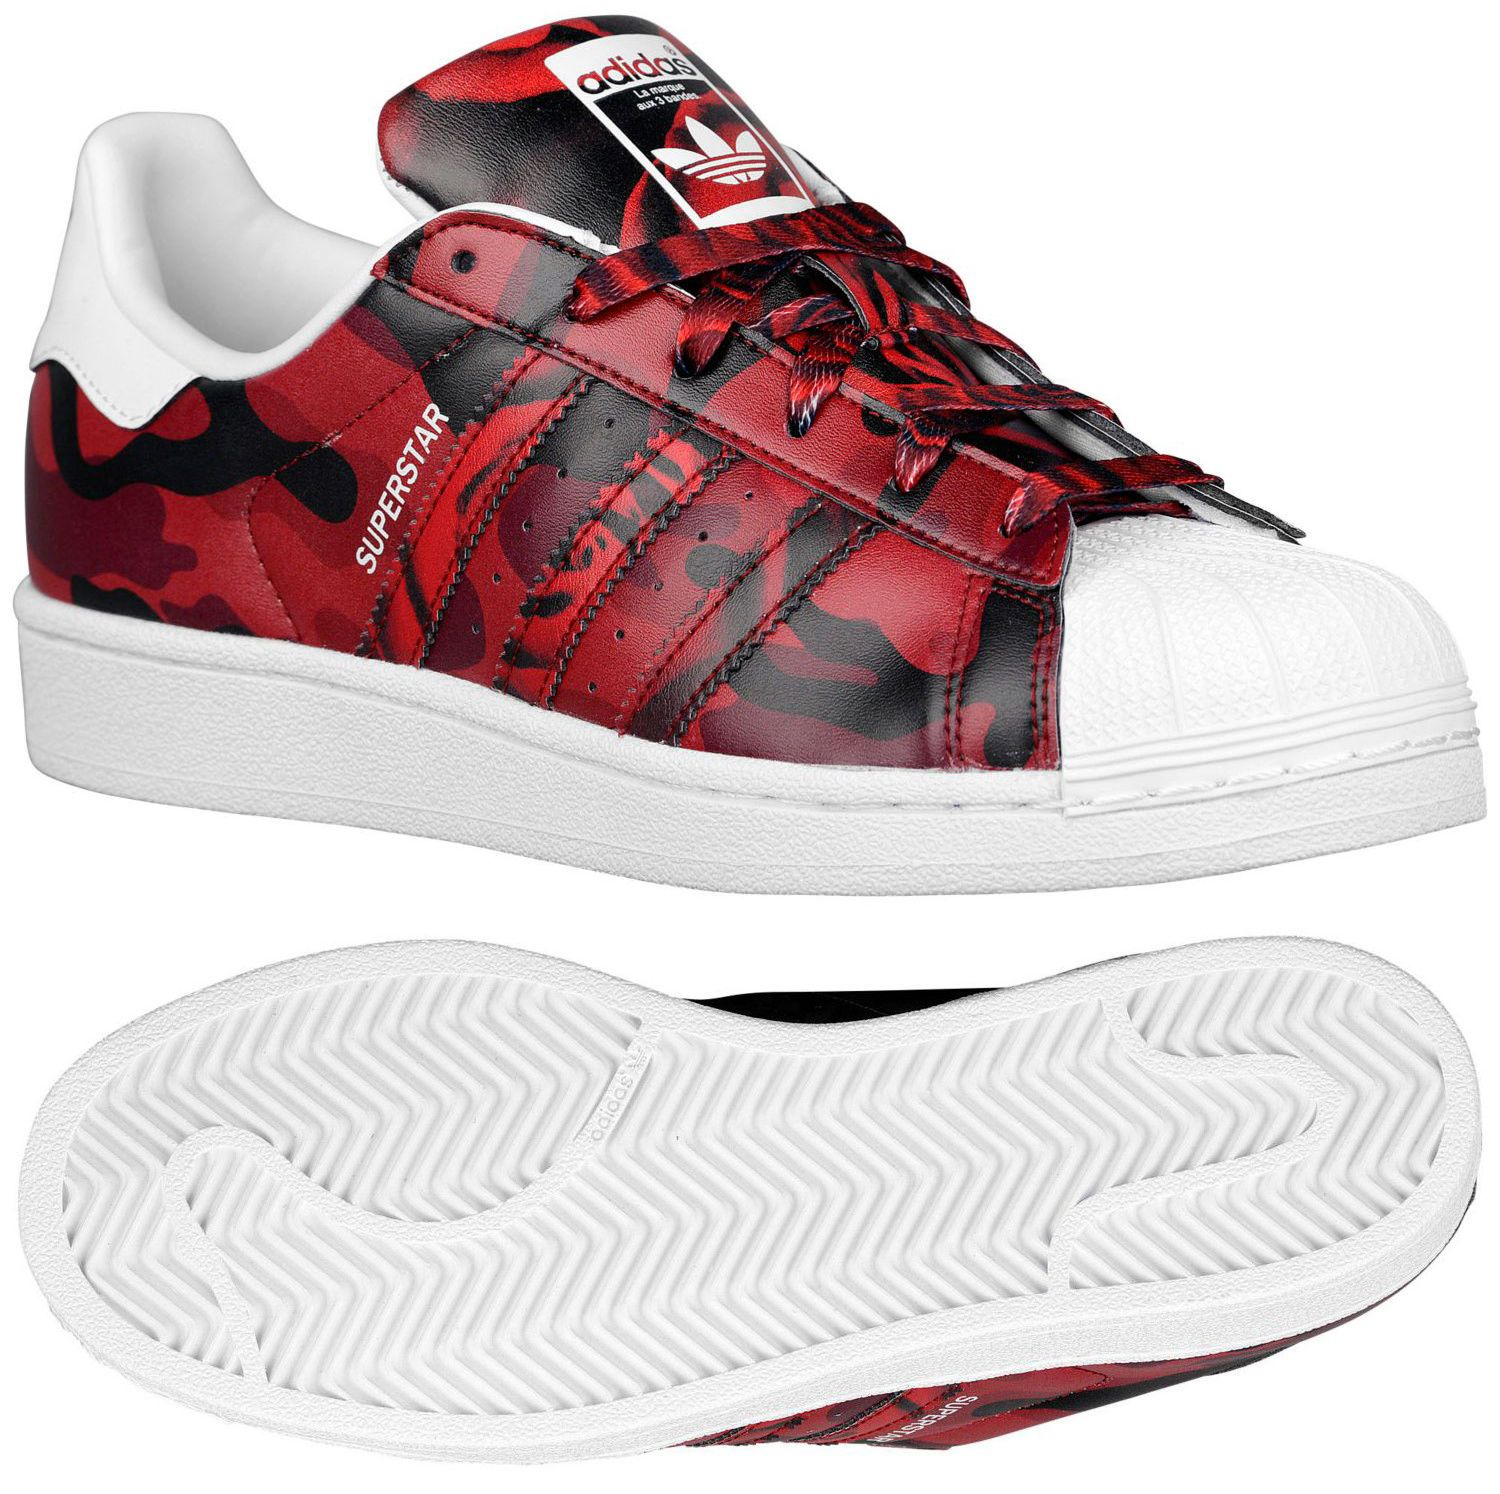 Adidas Originals Superstar White Black Red Rose Print AF5581 $185.00